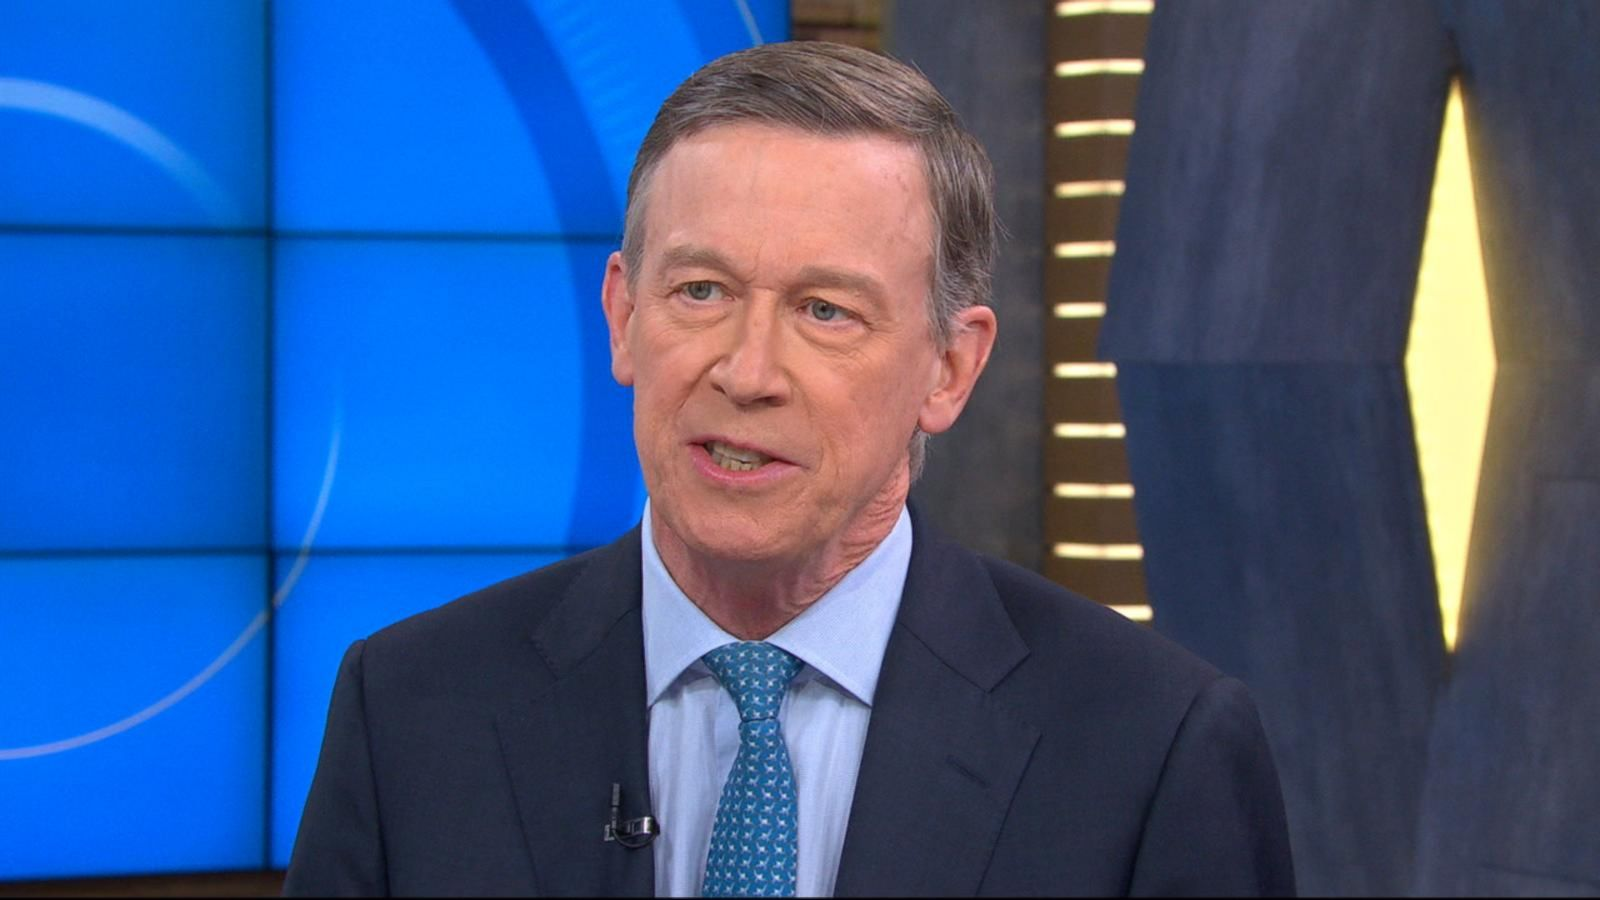 abcnews.go.com - John Verhovek - John Hickenlooper pushes his centrist message focused on reviving the middle class